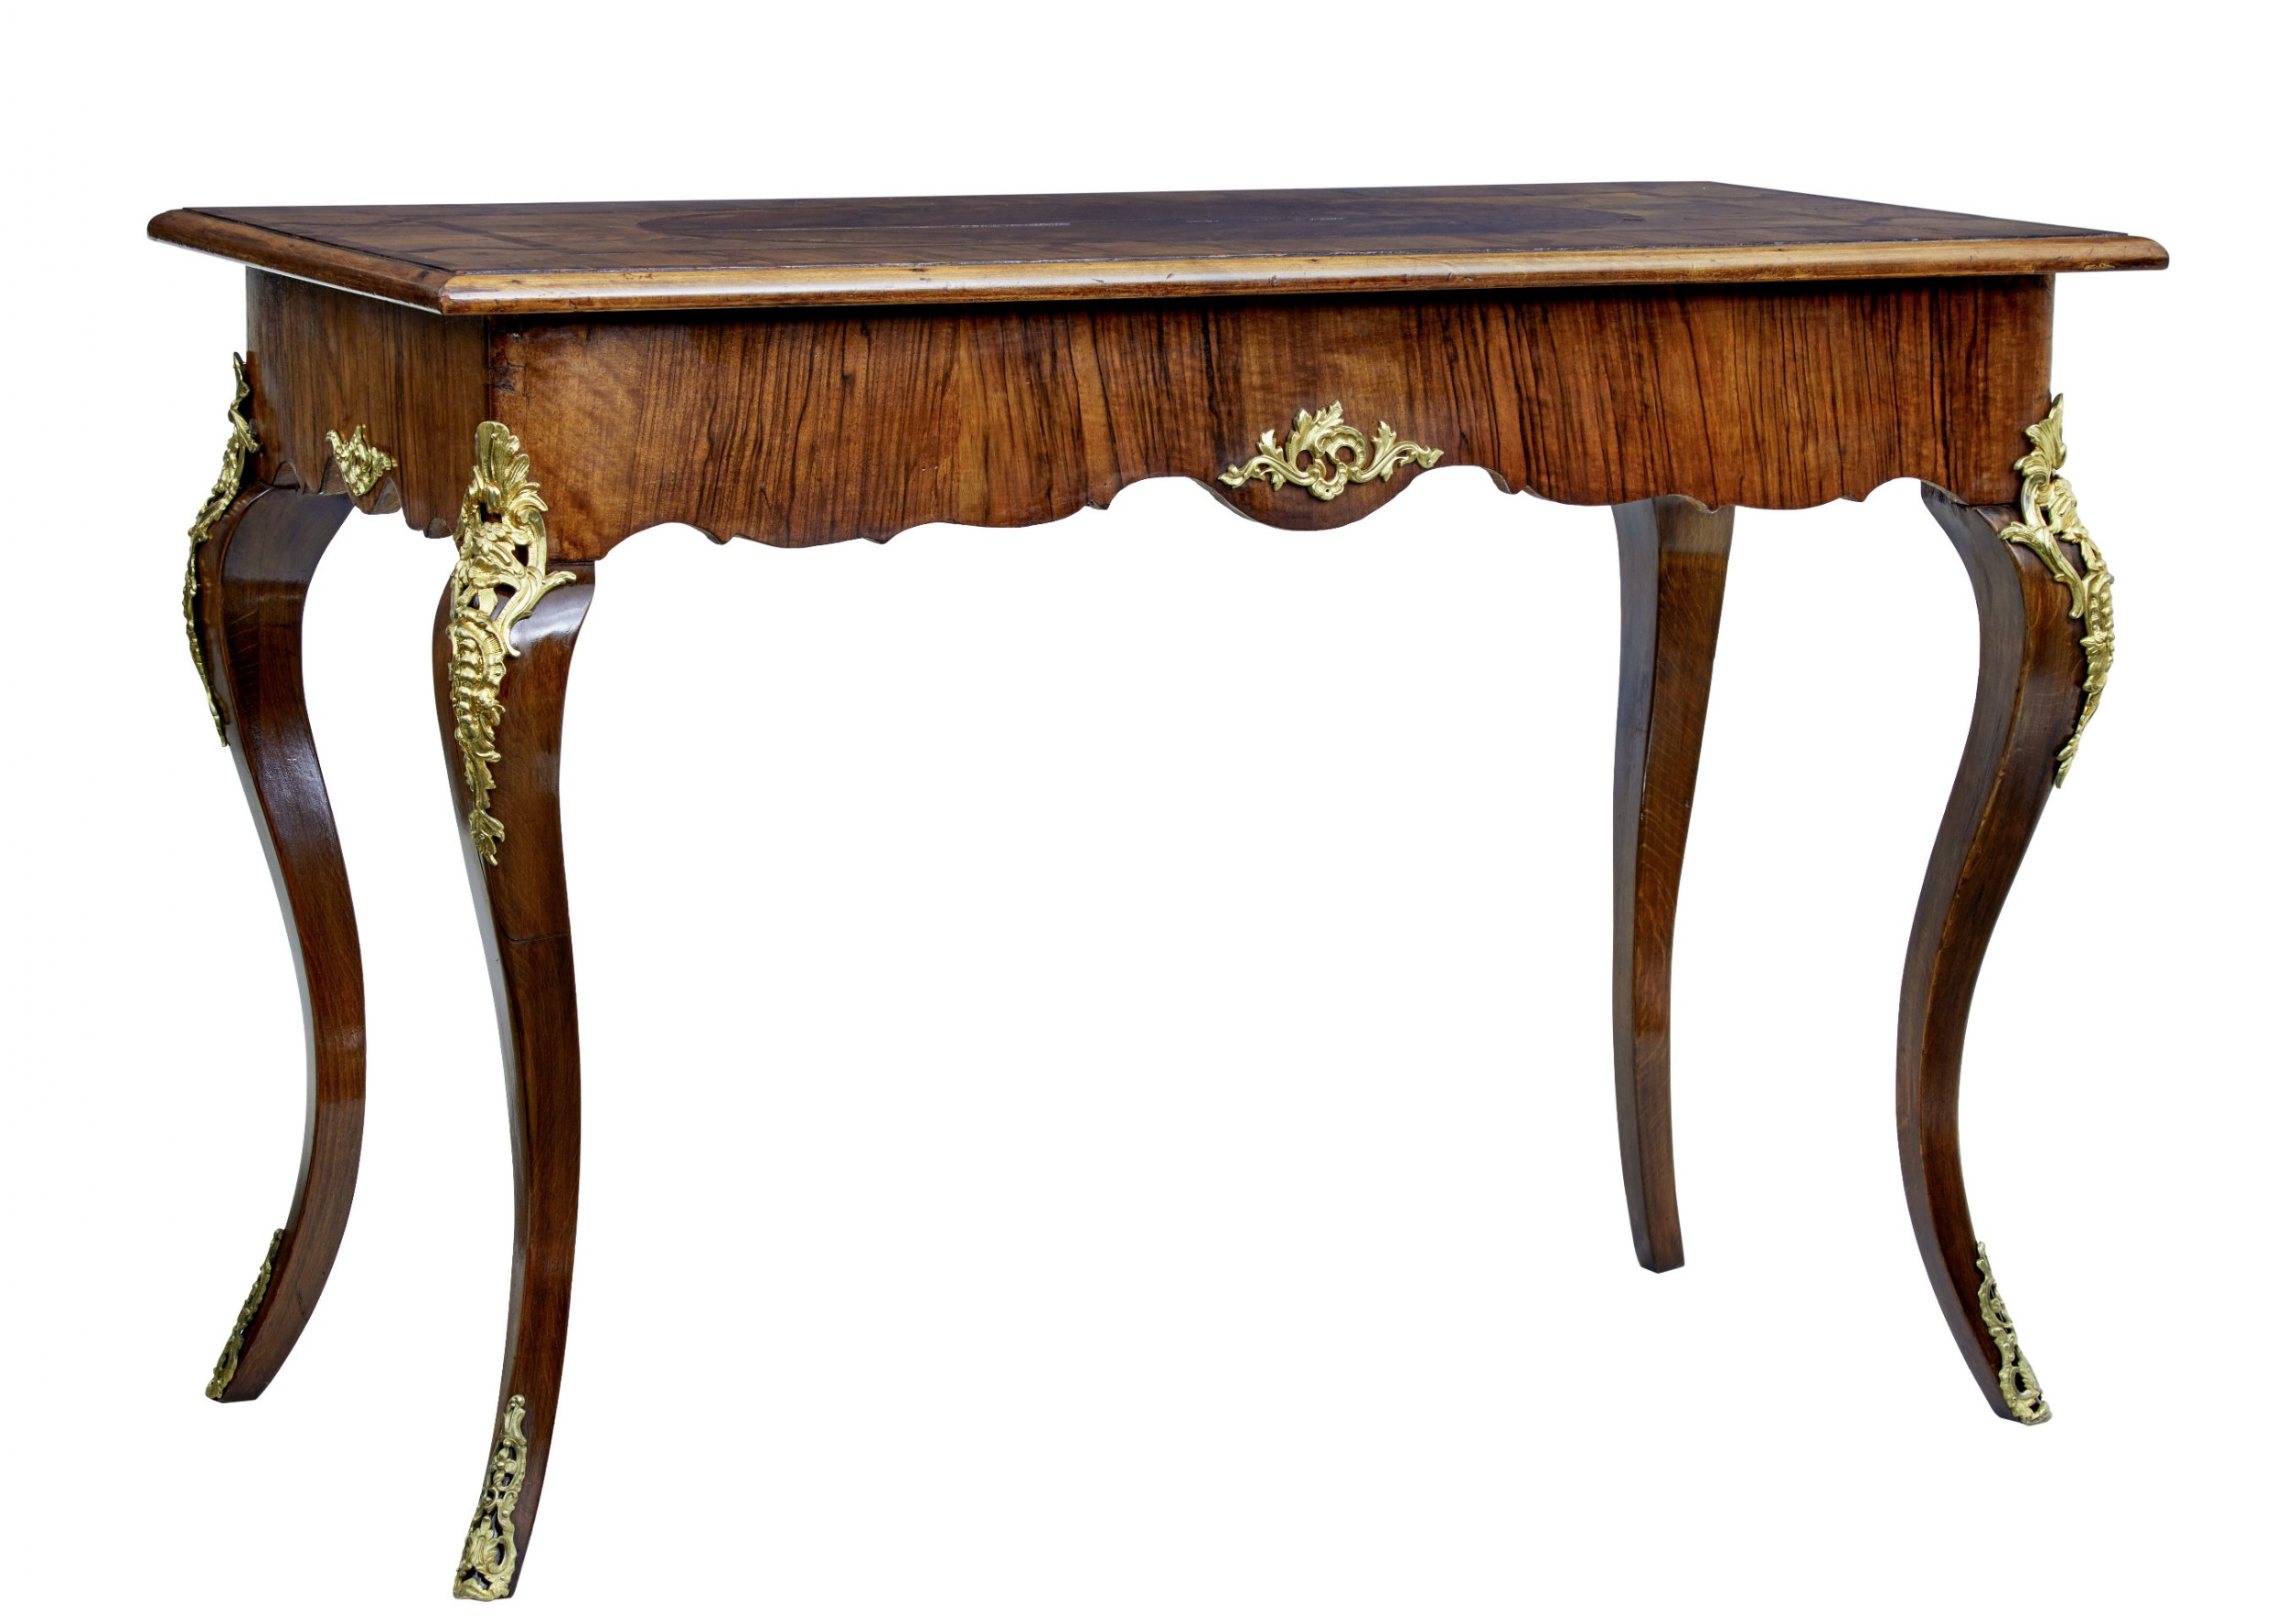 19th century rococo revival walnut and ormolu side table